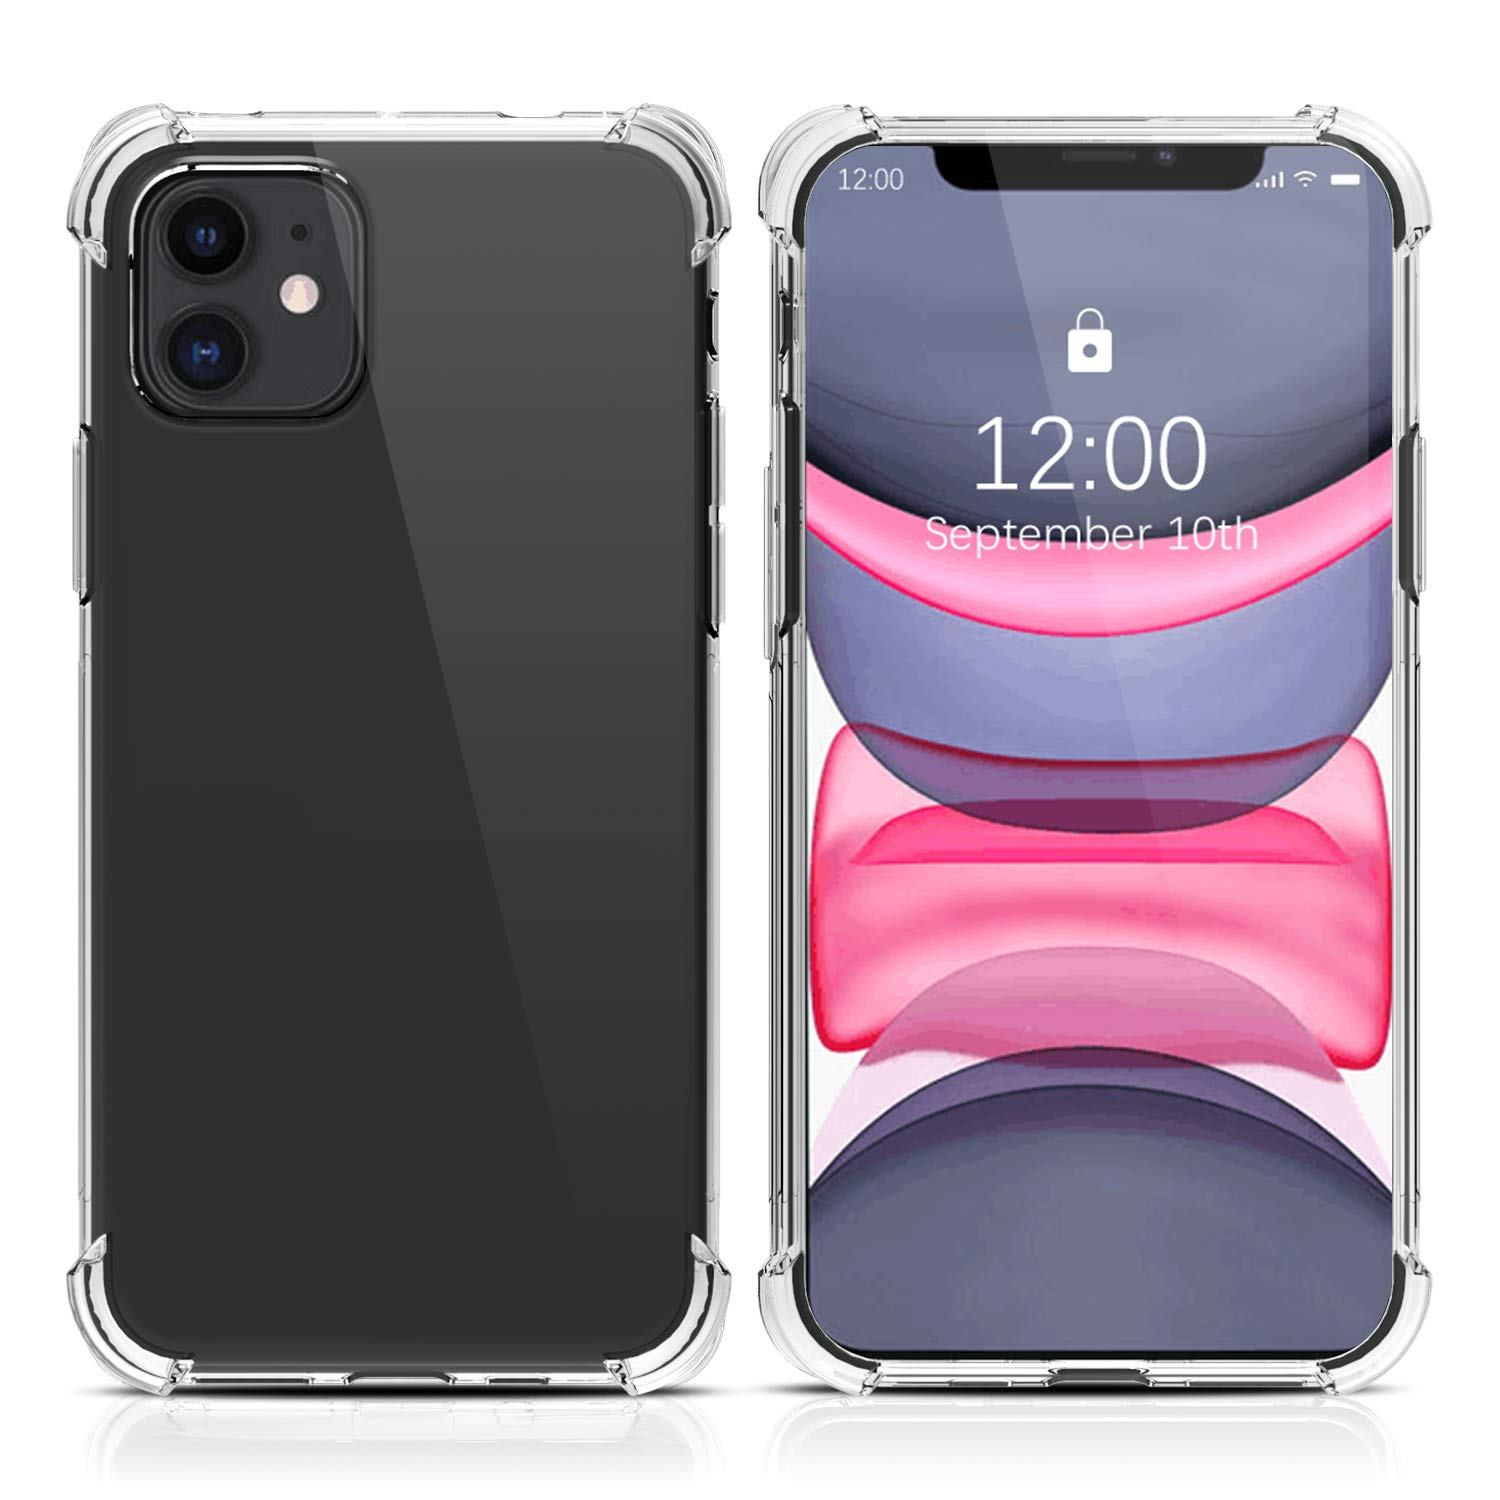 Migeec for iPhone 11 Case - Crystal Clear Hybrid Material Covers Air Cushion Gel Bumper Technology Full Protection Phone cases for iPhone 11 6.1 inch